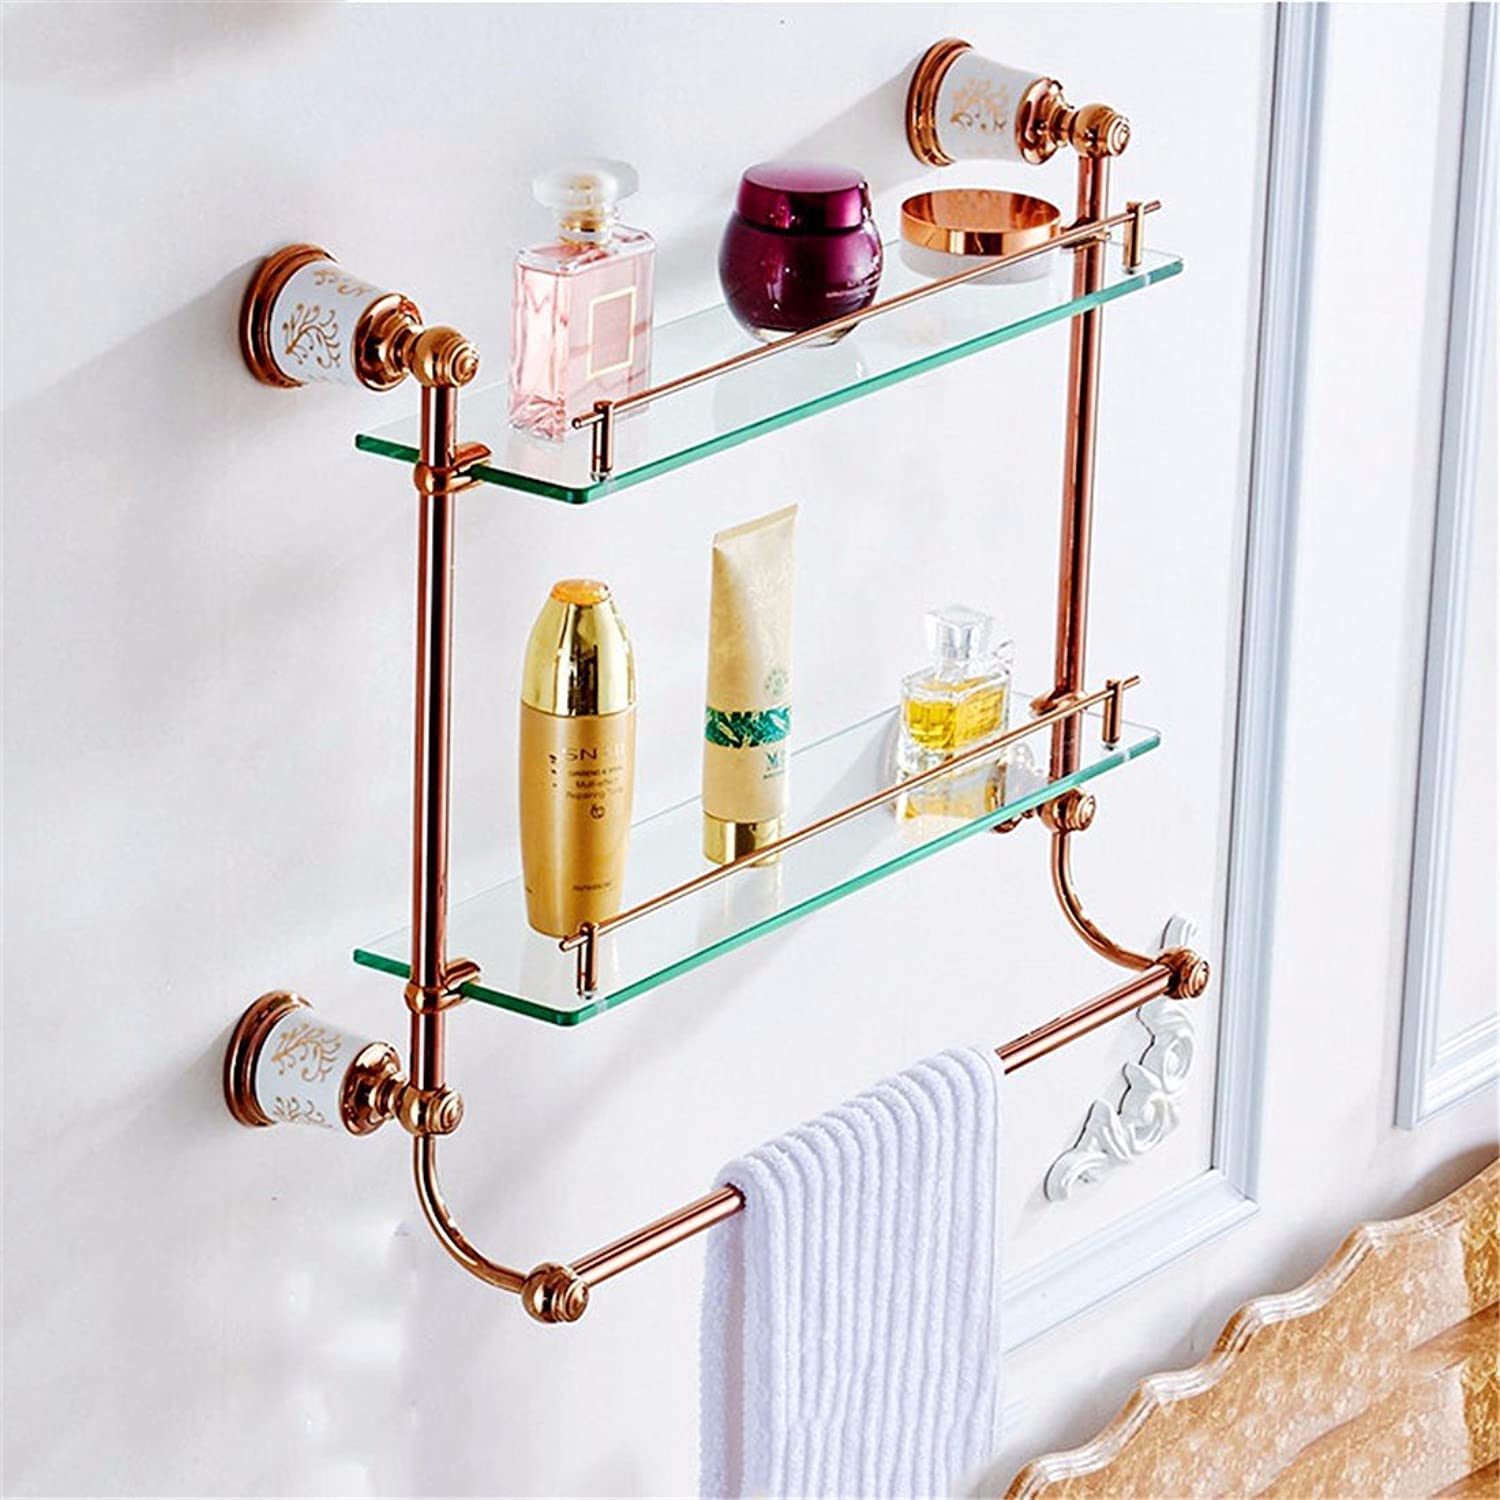 Continental Copper pink gold Ceramic Bathroom Accessory kit Racks, Built-in Shelf 2